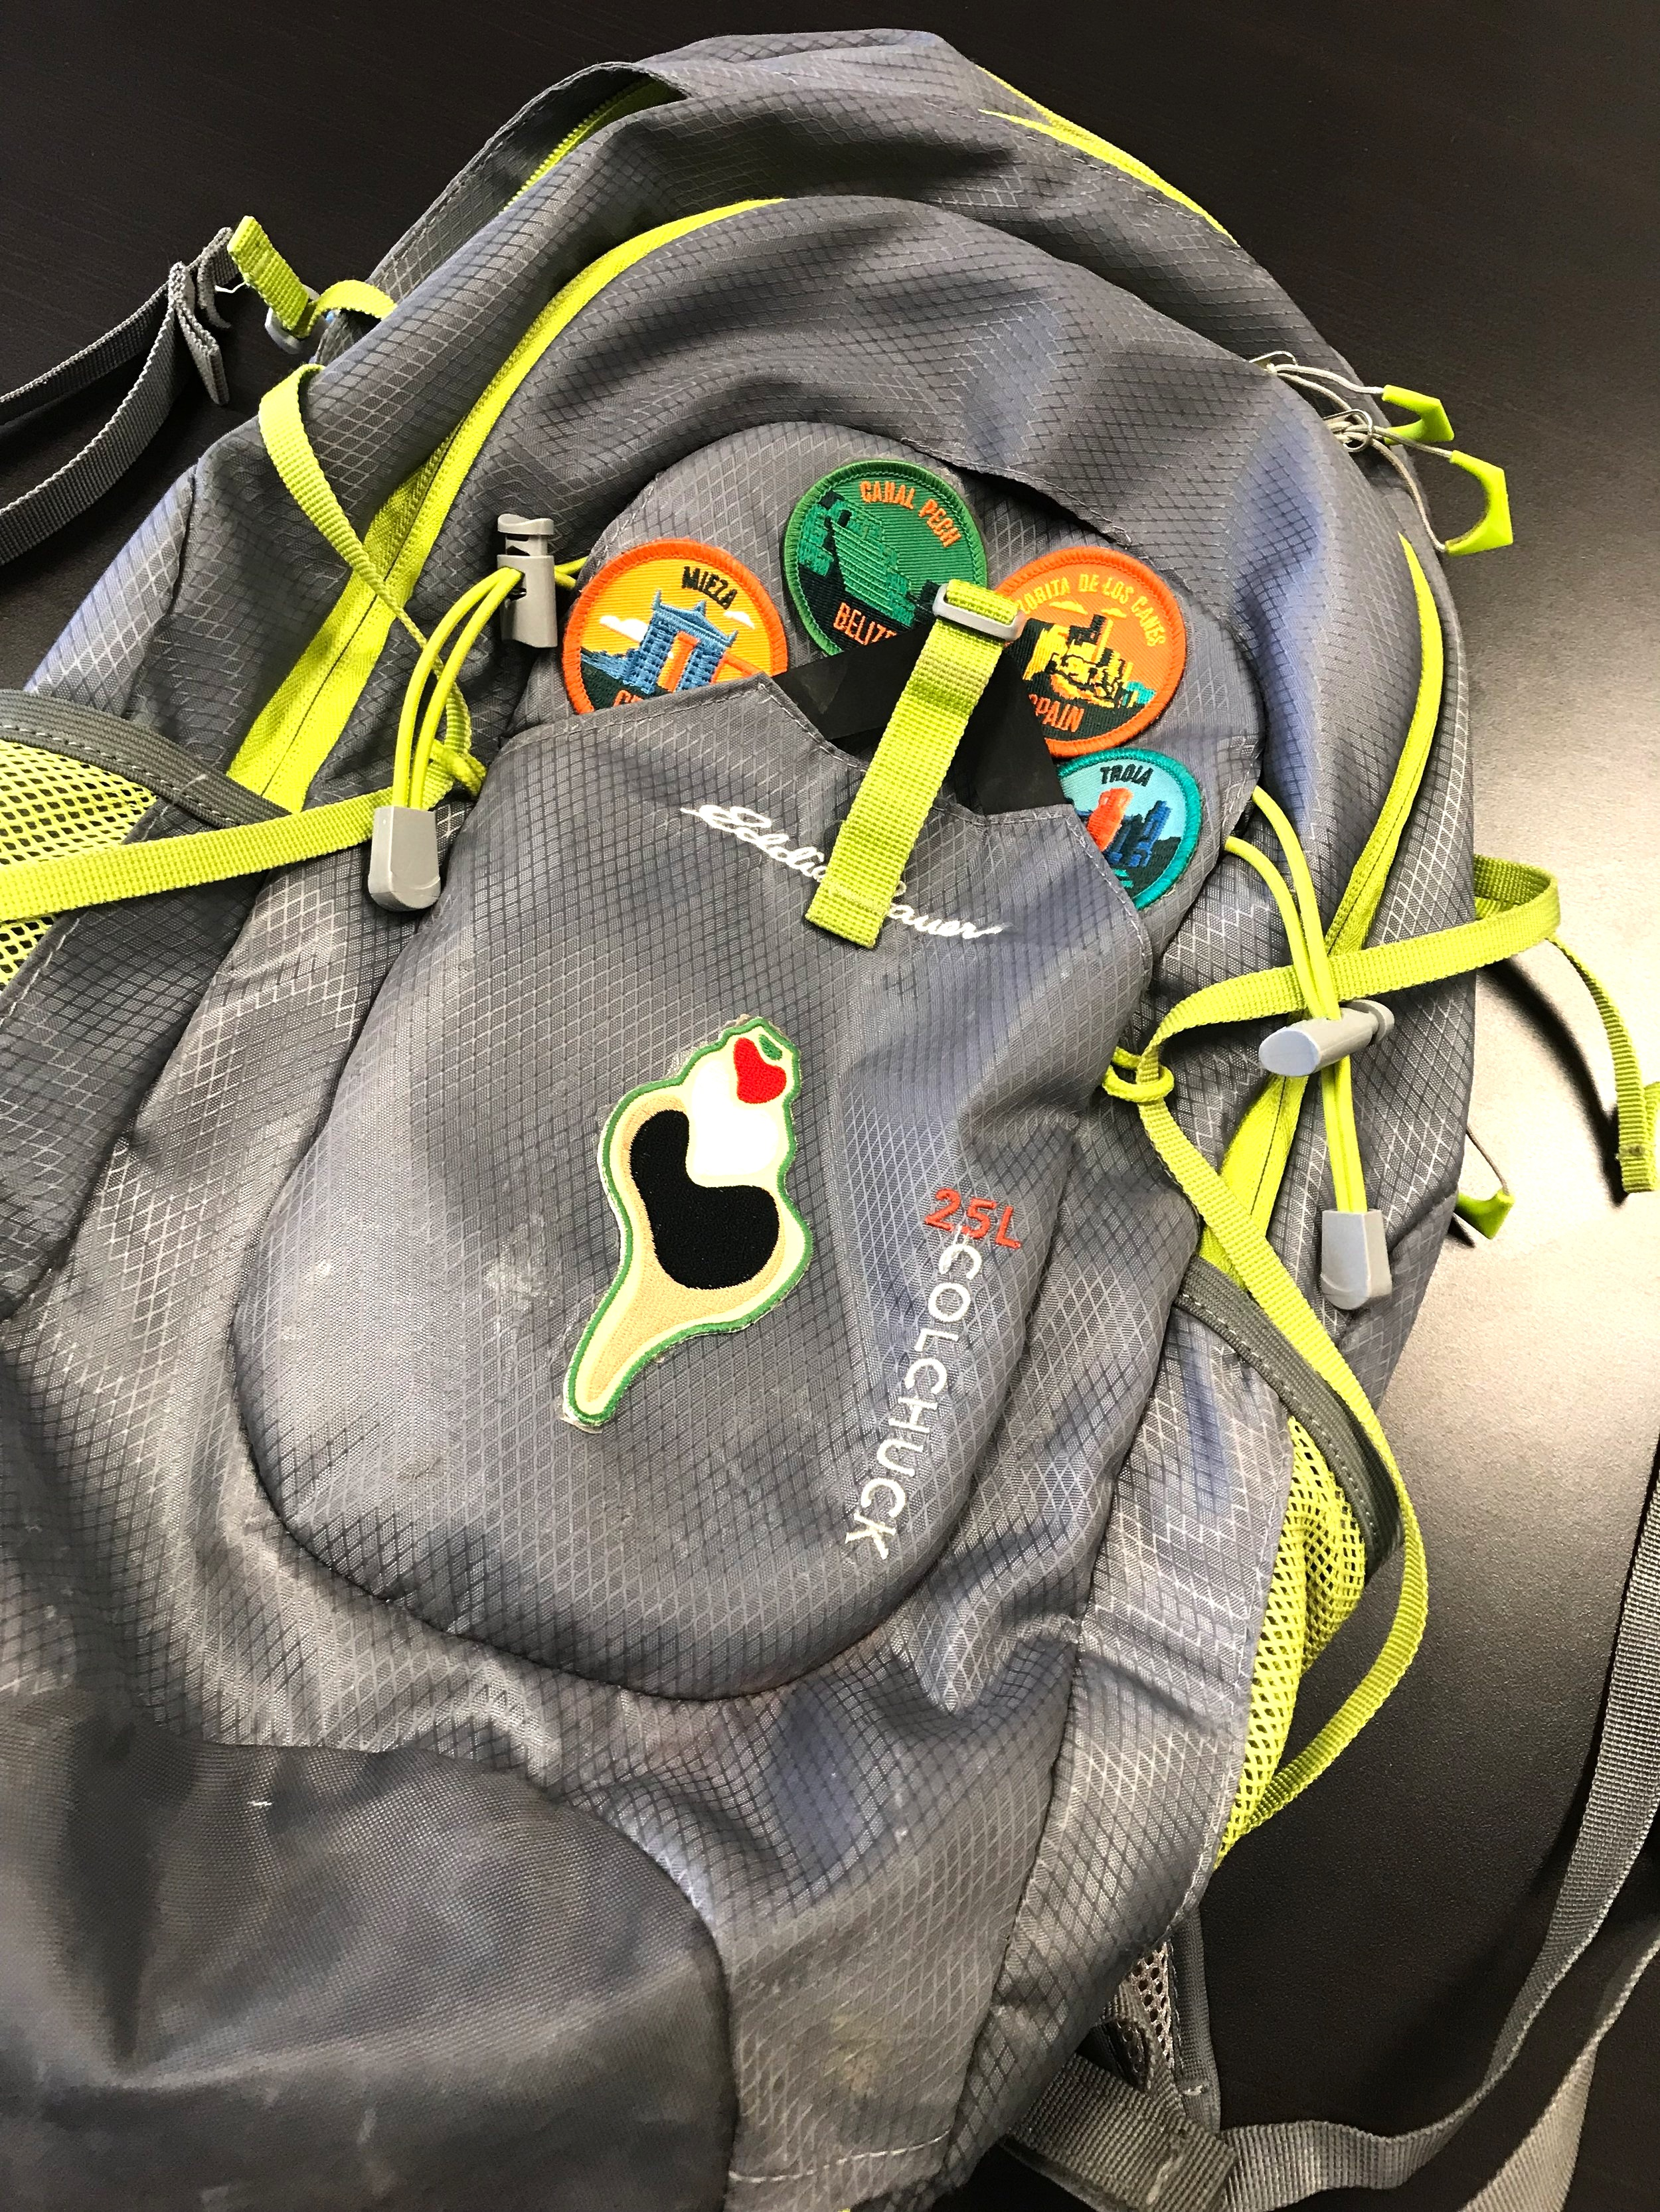 The proud owner of this hydration pack has earned patches at all four project sites.